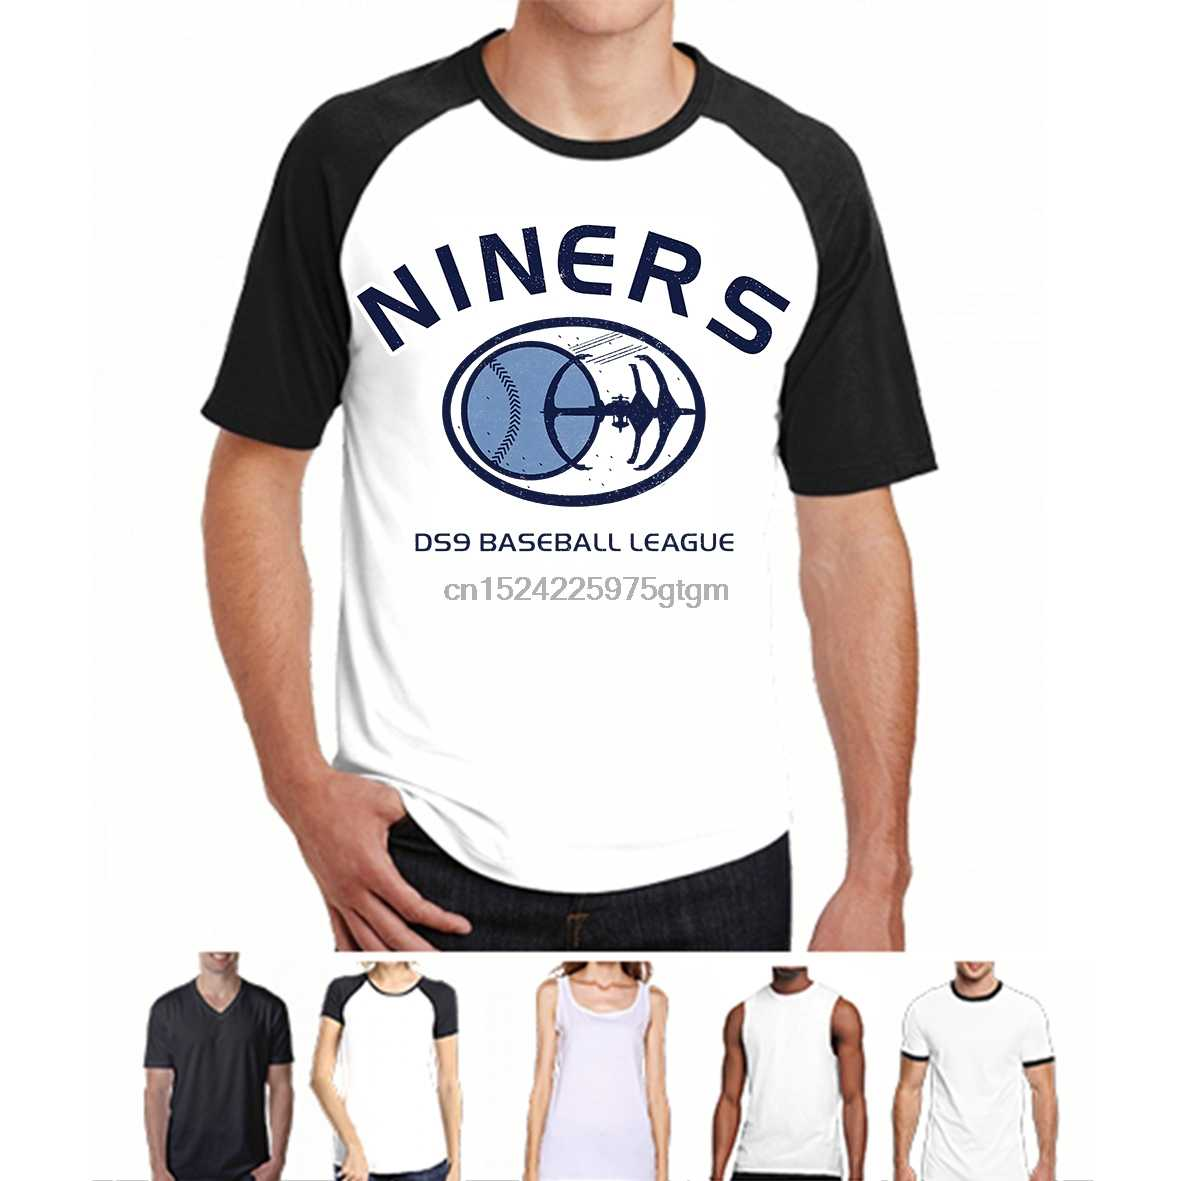 48051fd6f26 Detail Feedback Questions about DS9 Niners Baseball League Logo Graphic T  Shirt on Aliexpress.com